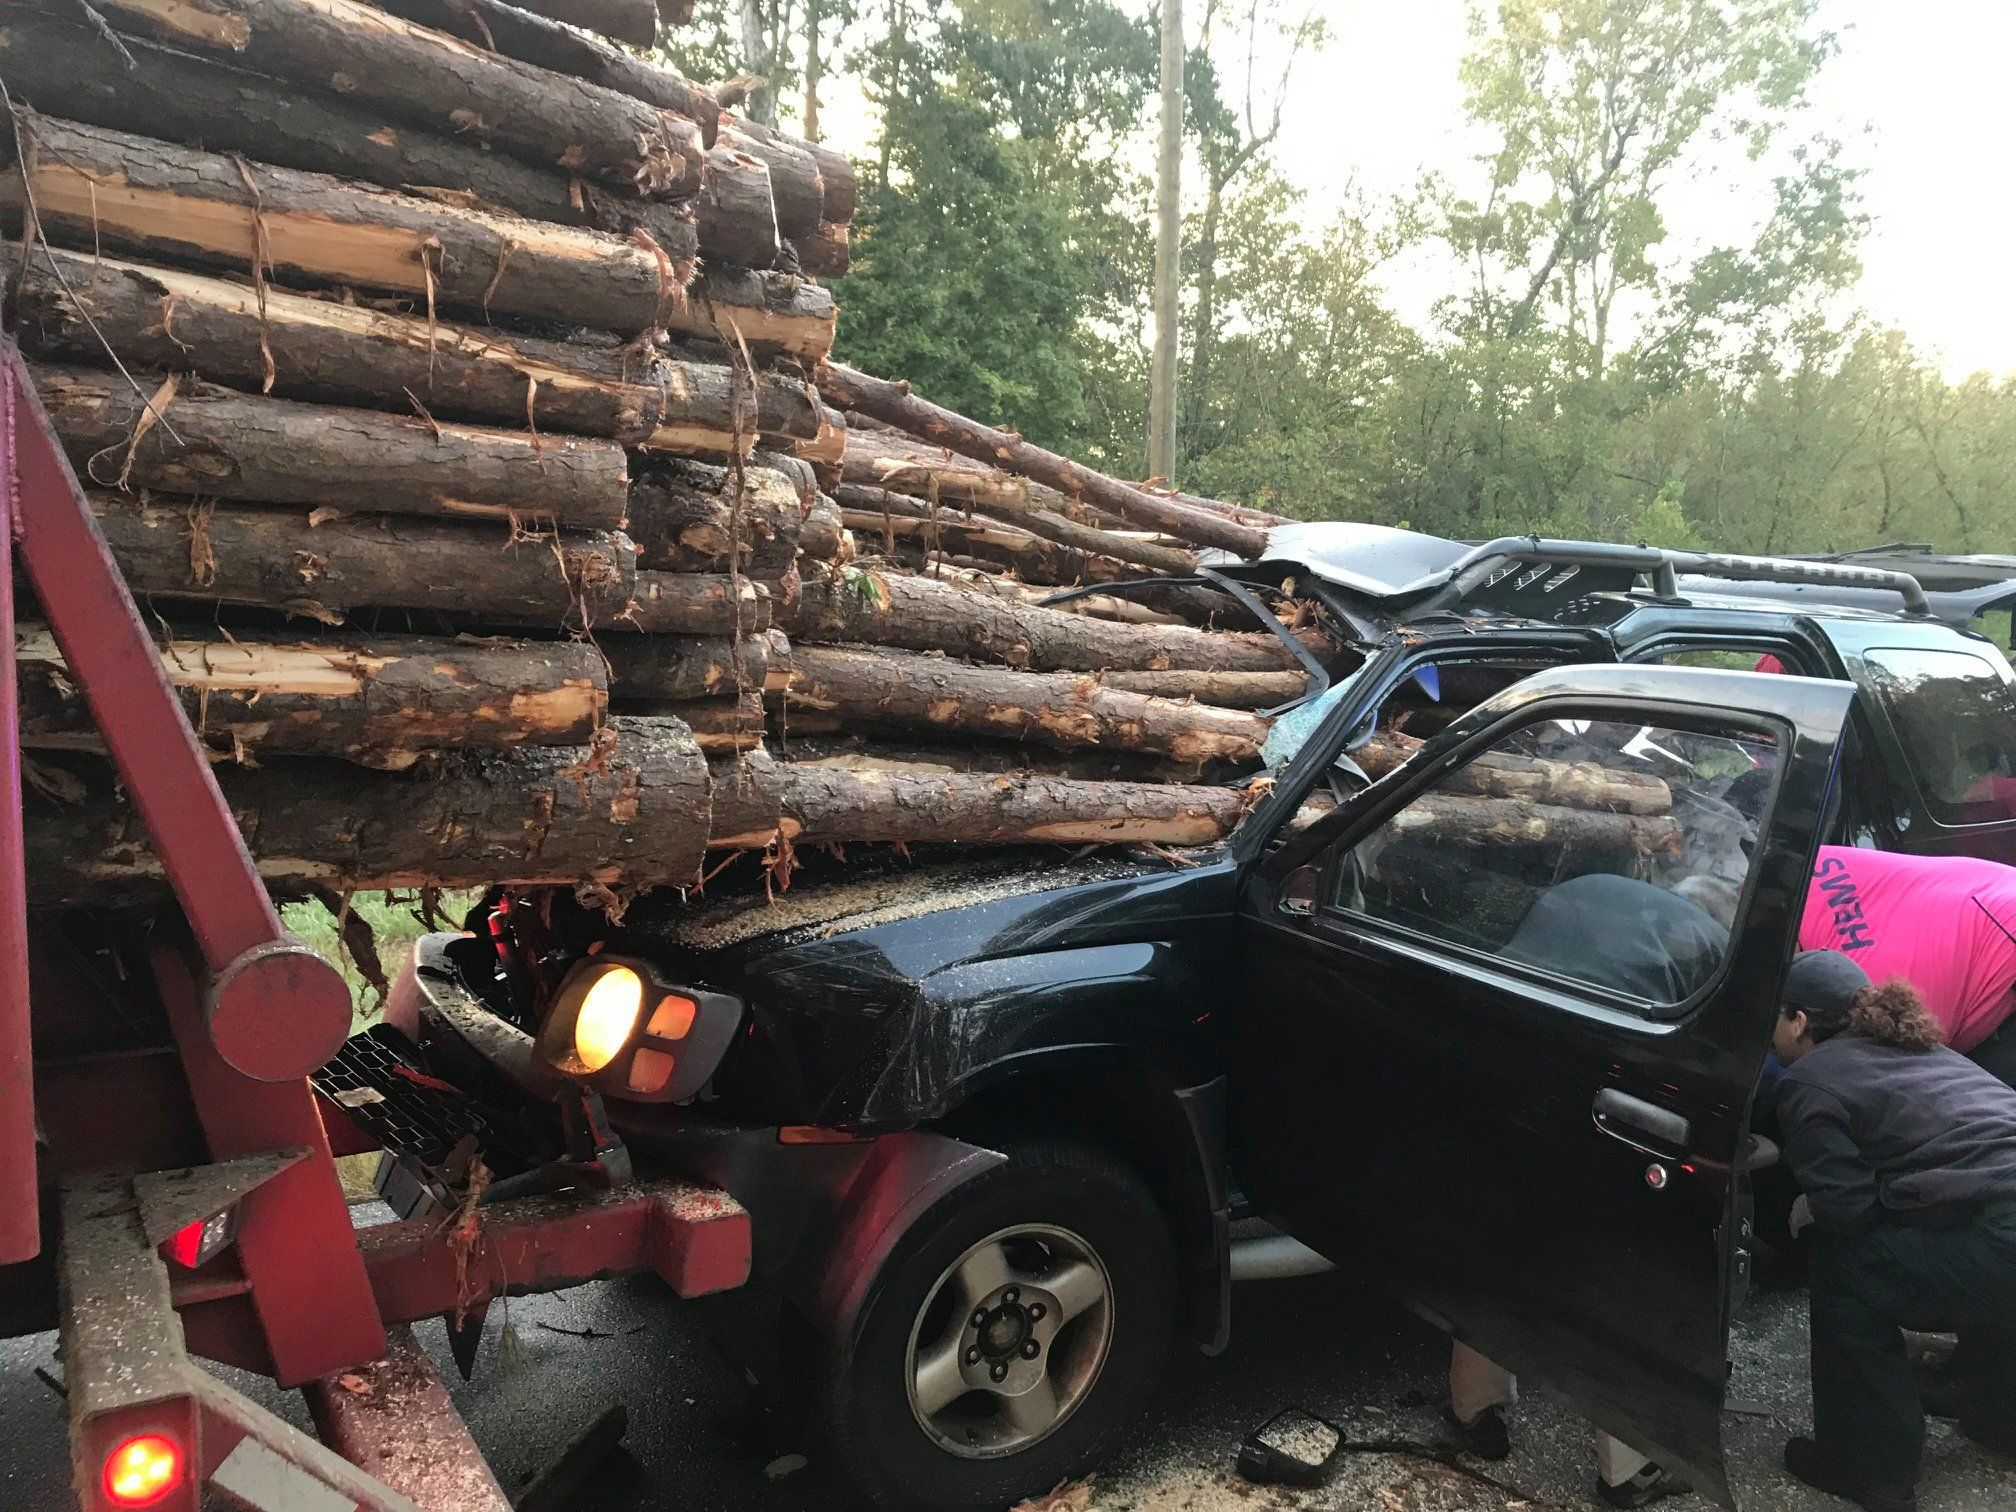 Dozens of Logs Smash Through Windshield, Driver Miraculously Survives